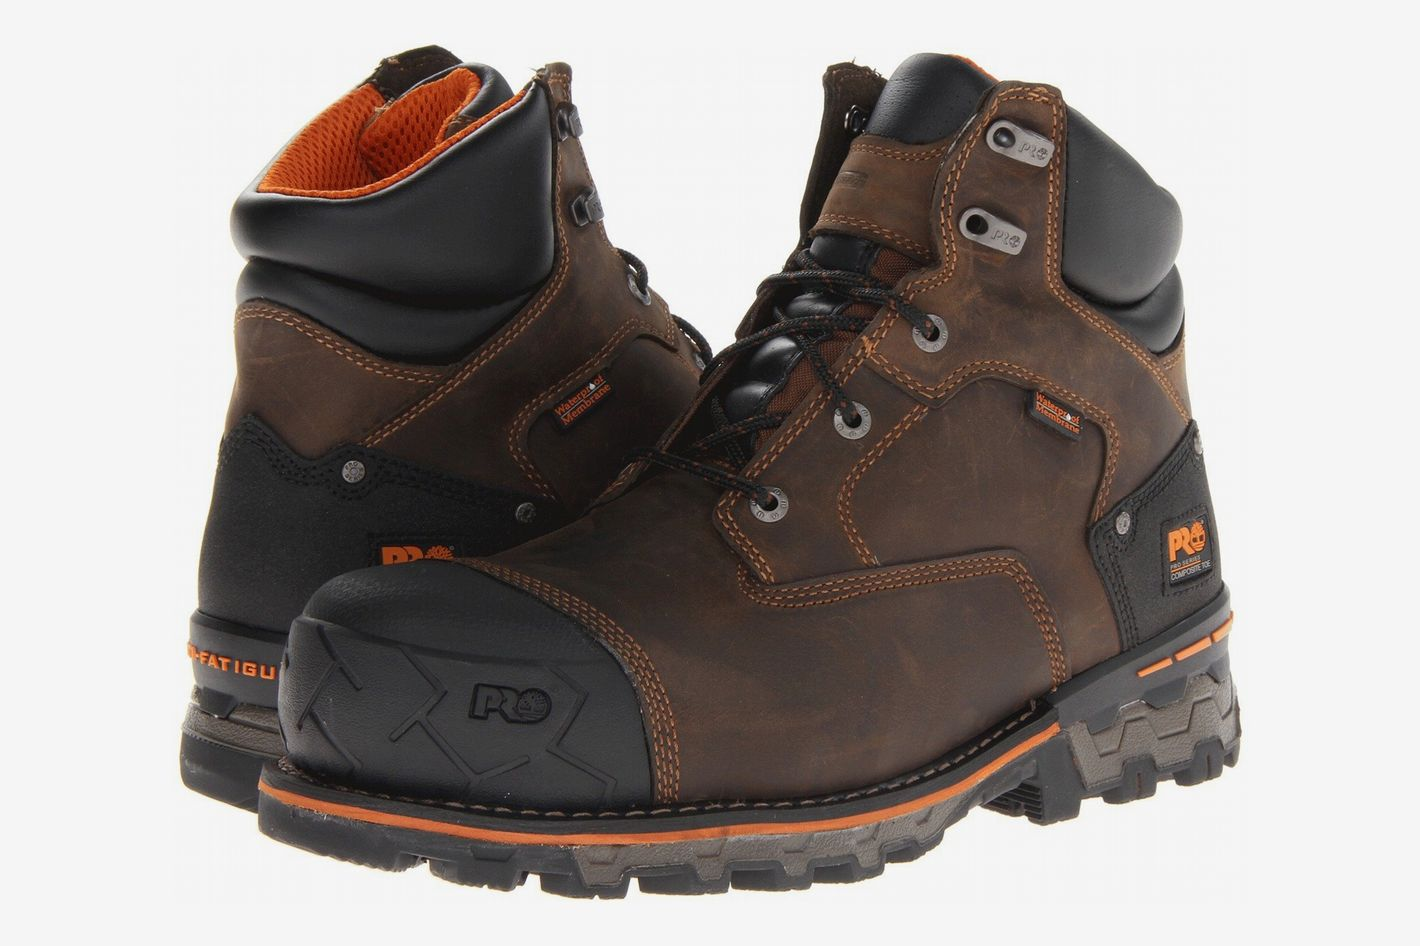 Timberland PRO Boondock Safety Toe Work Boot 9d8c54724366